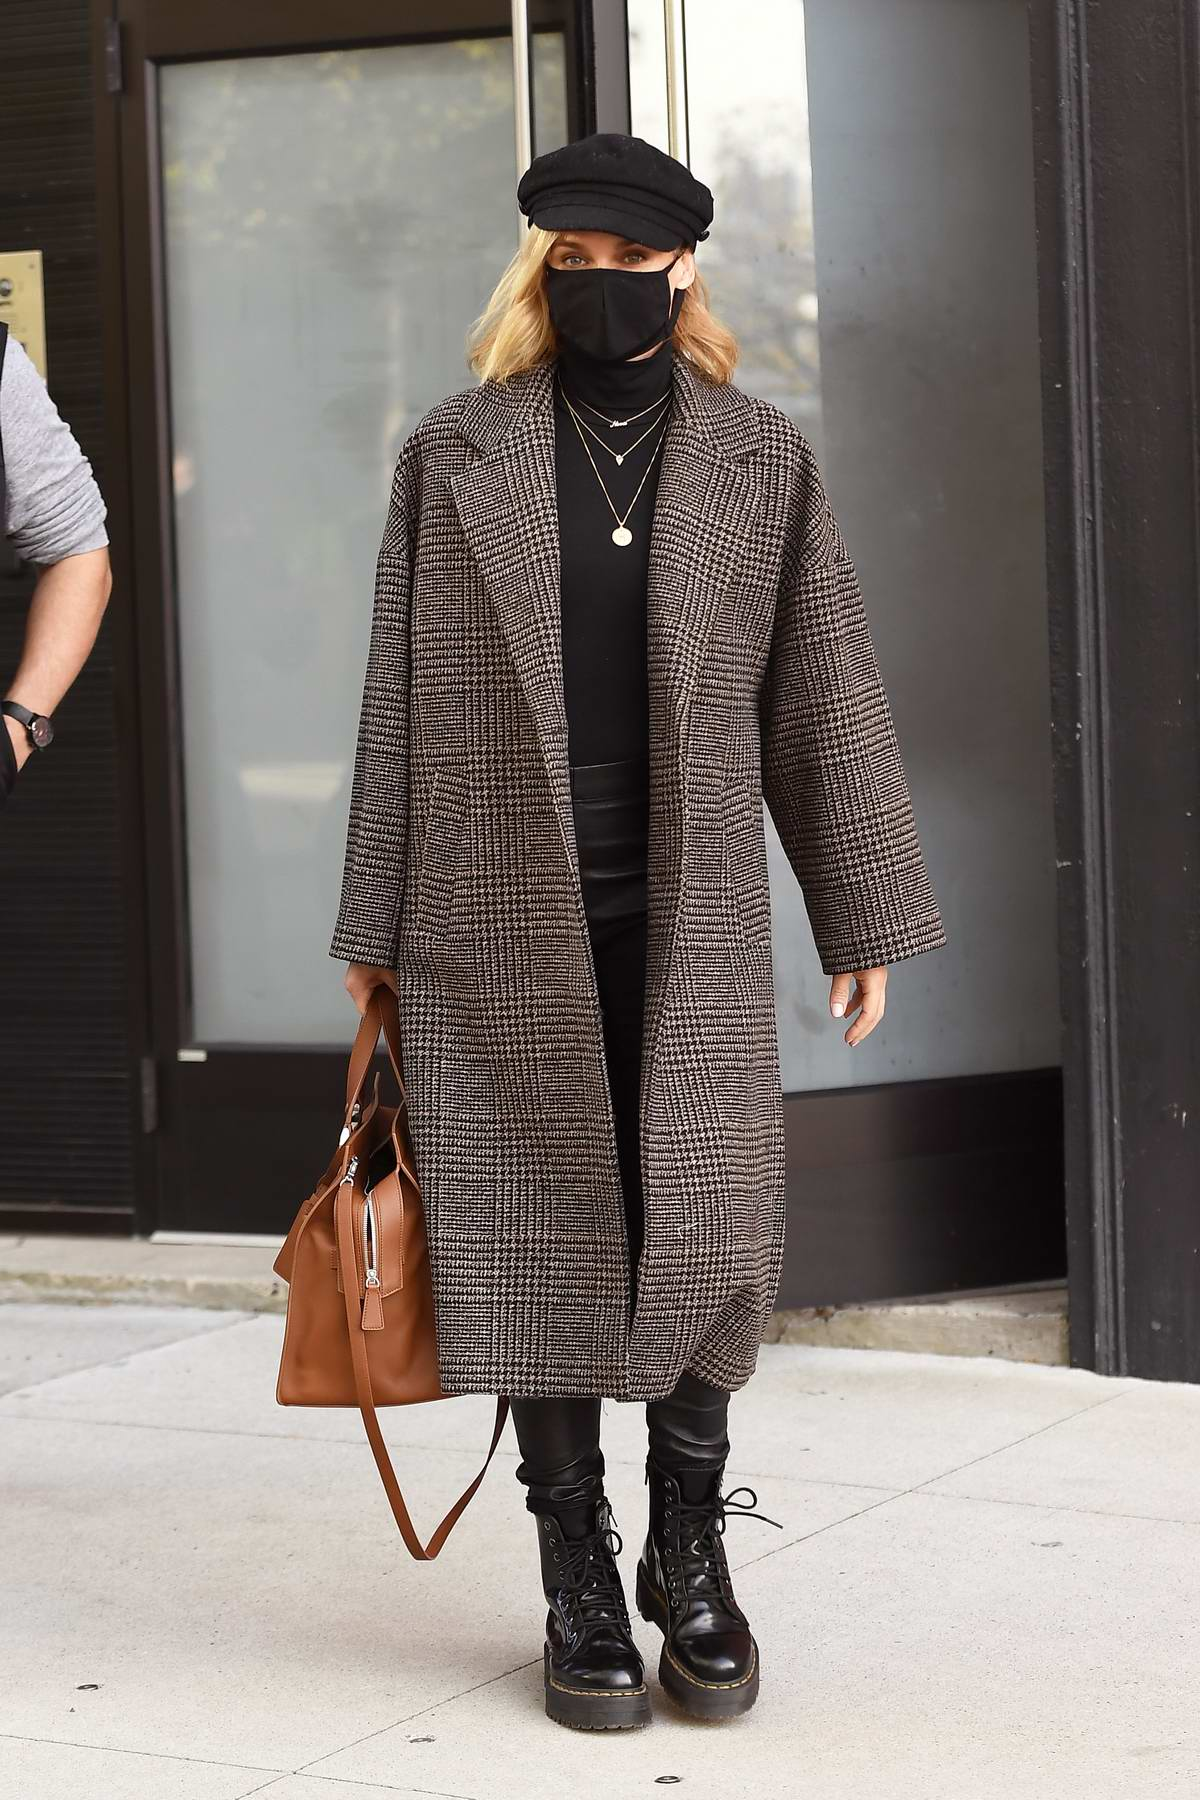 Diane Kruger seen wearing a Mango Coat as she leaves a photoshoot in New York City